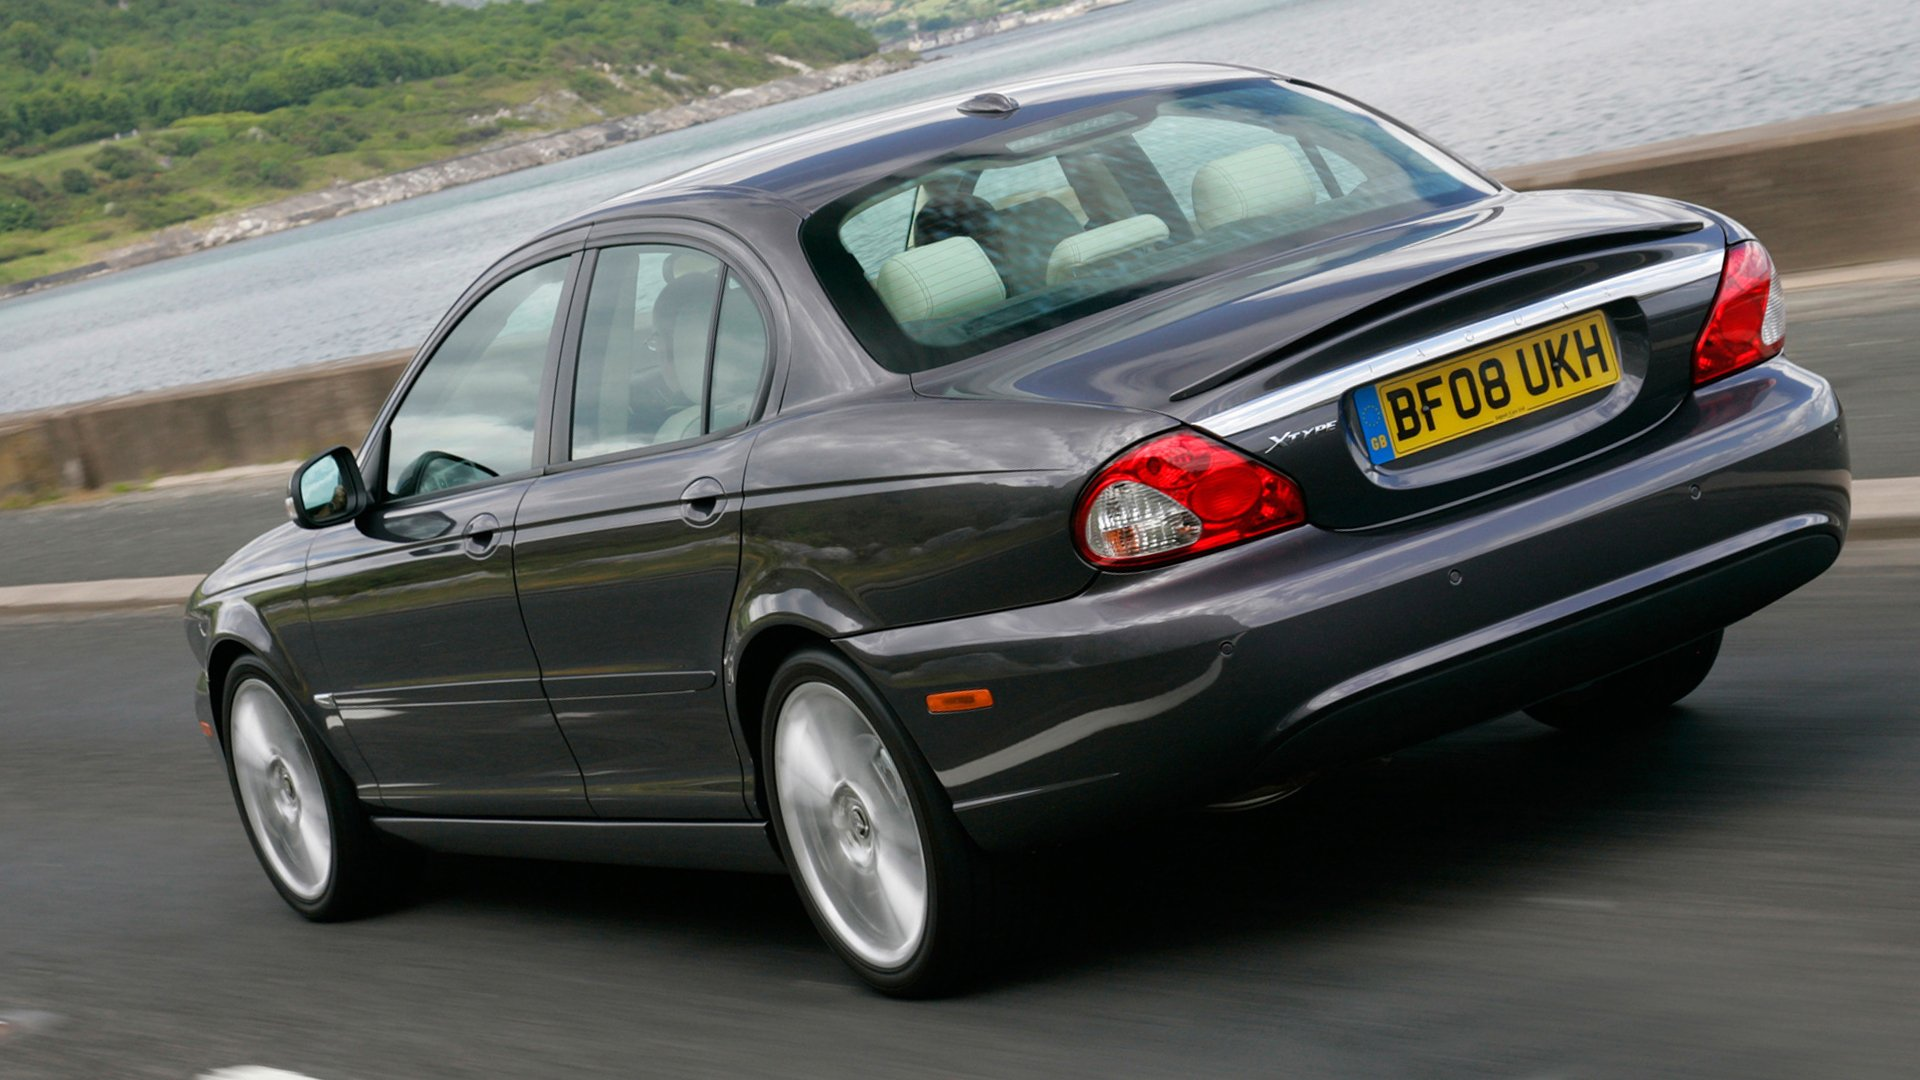 Sedan Cars Models 2019 Jaguar X-Type HD